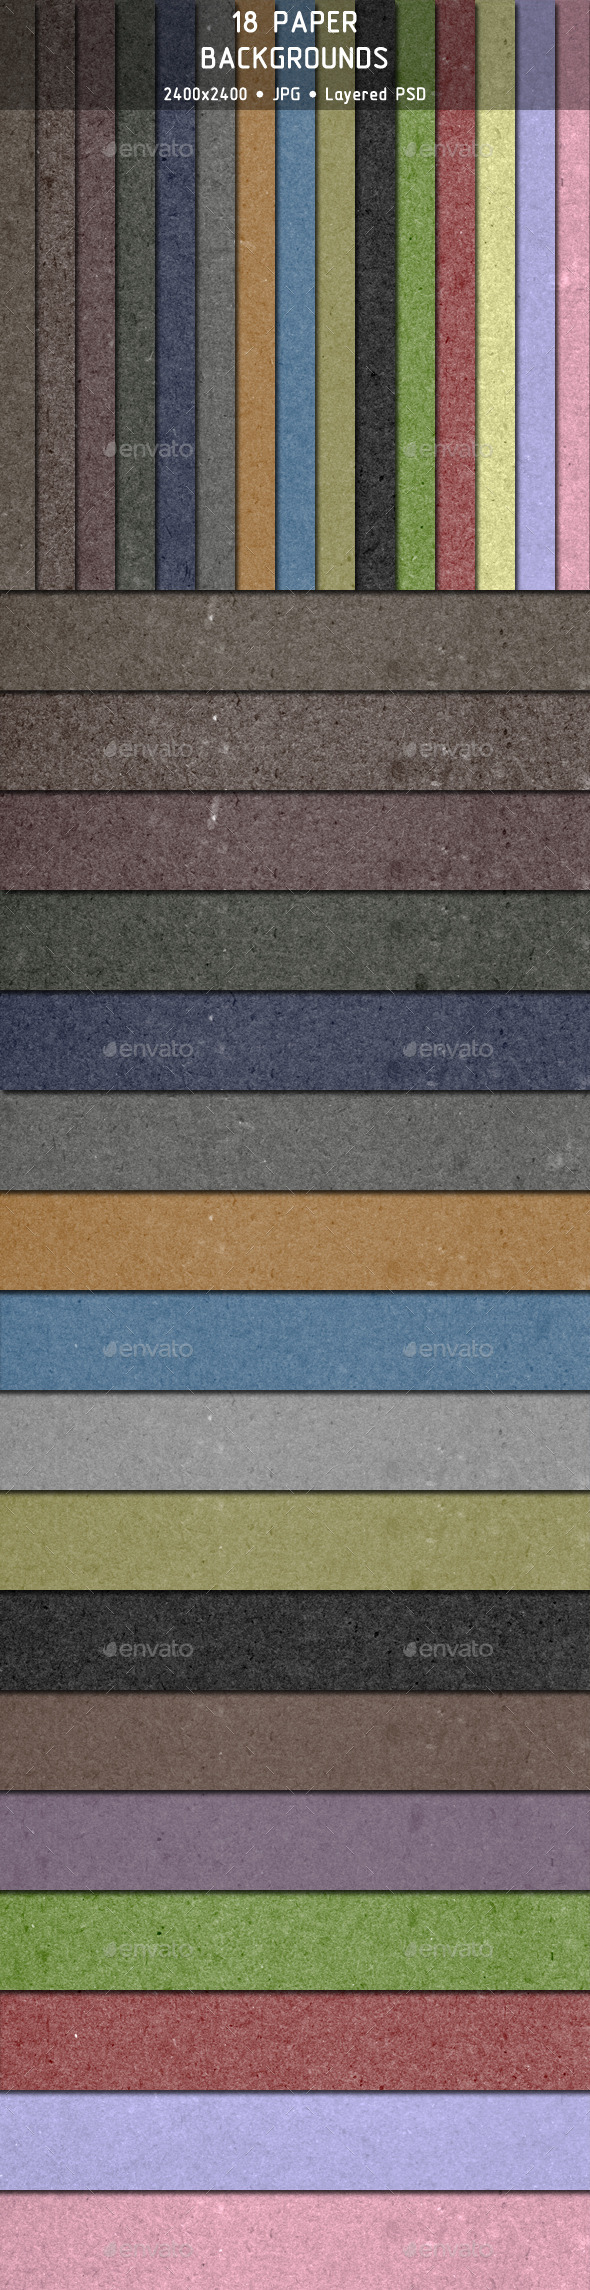 18 Paper Backgrounds - Backgrounds Graphics